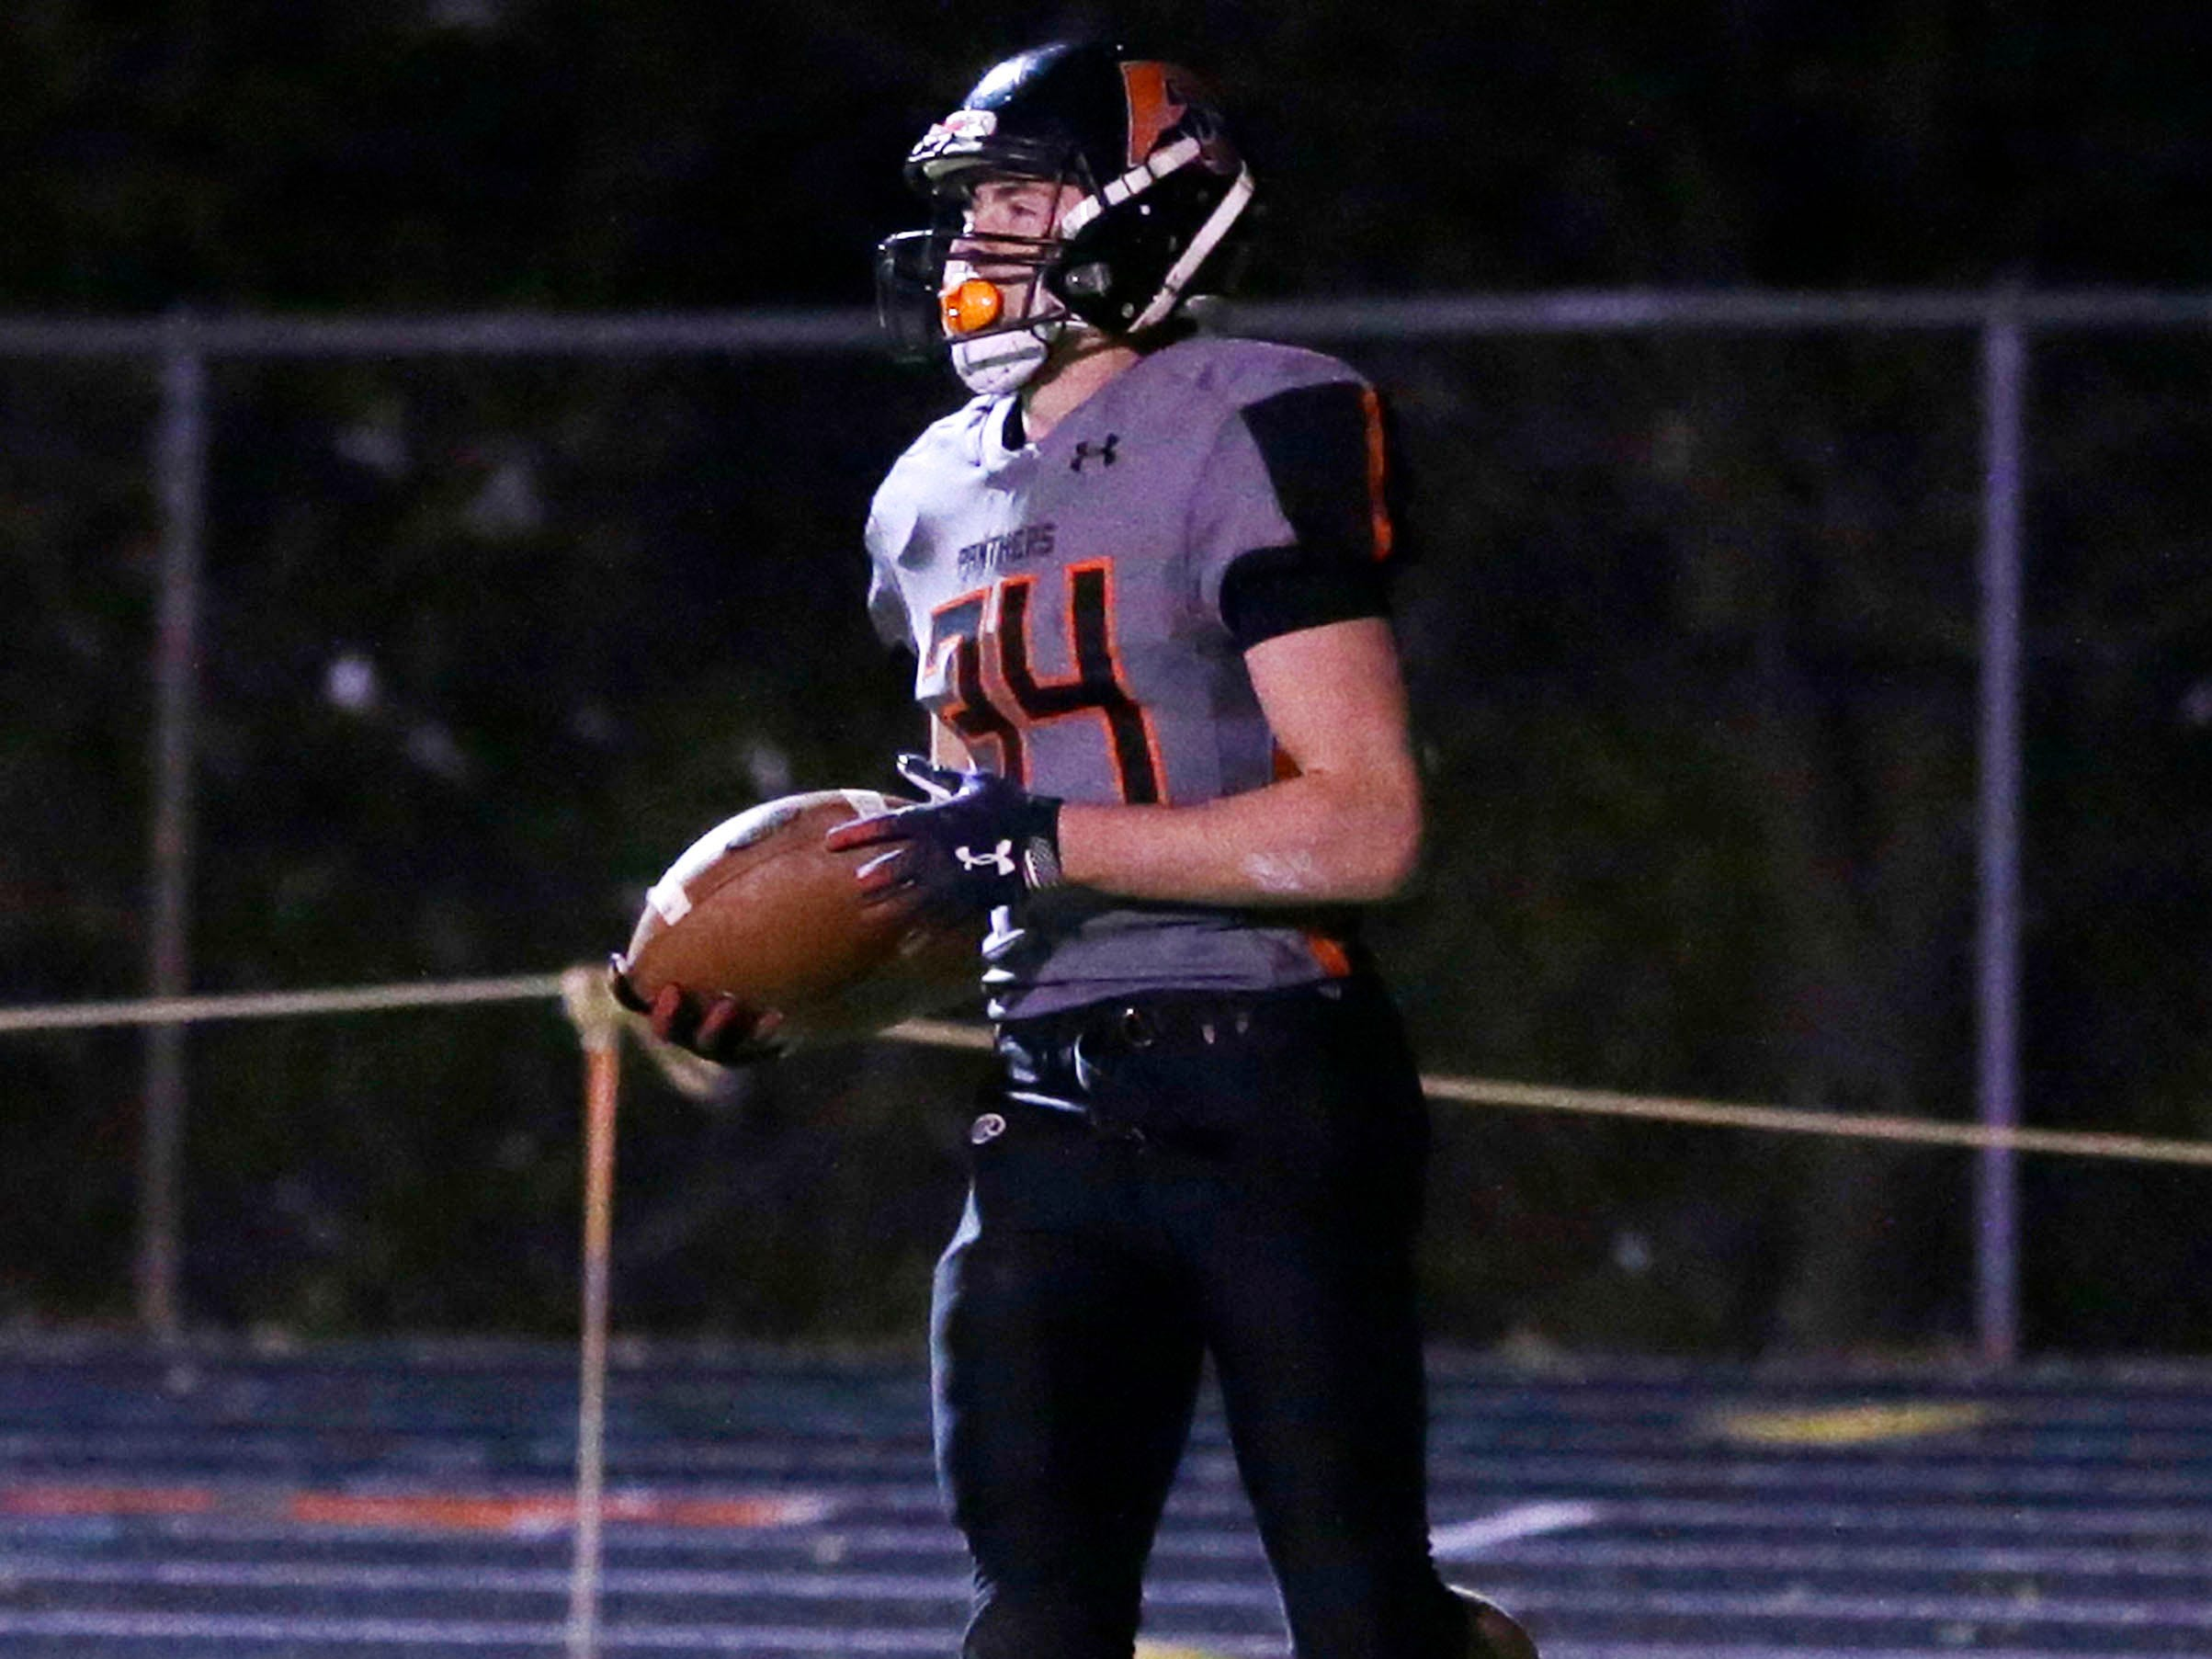 Reedsville's Brandon Stelzer (34) carries the ball in the end zone after scoring a touchdown against Pittsville, Friday, November 2, 2018, in Reedsville, Wis.